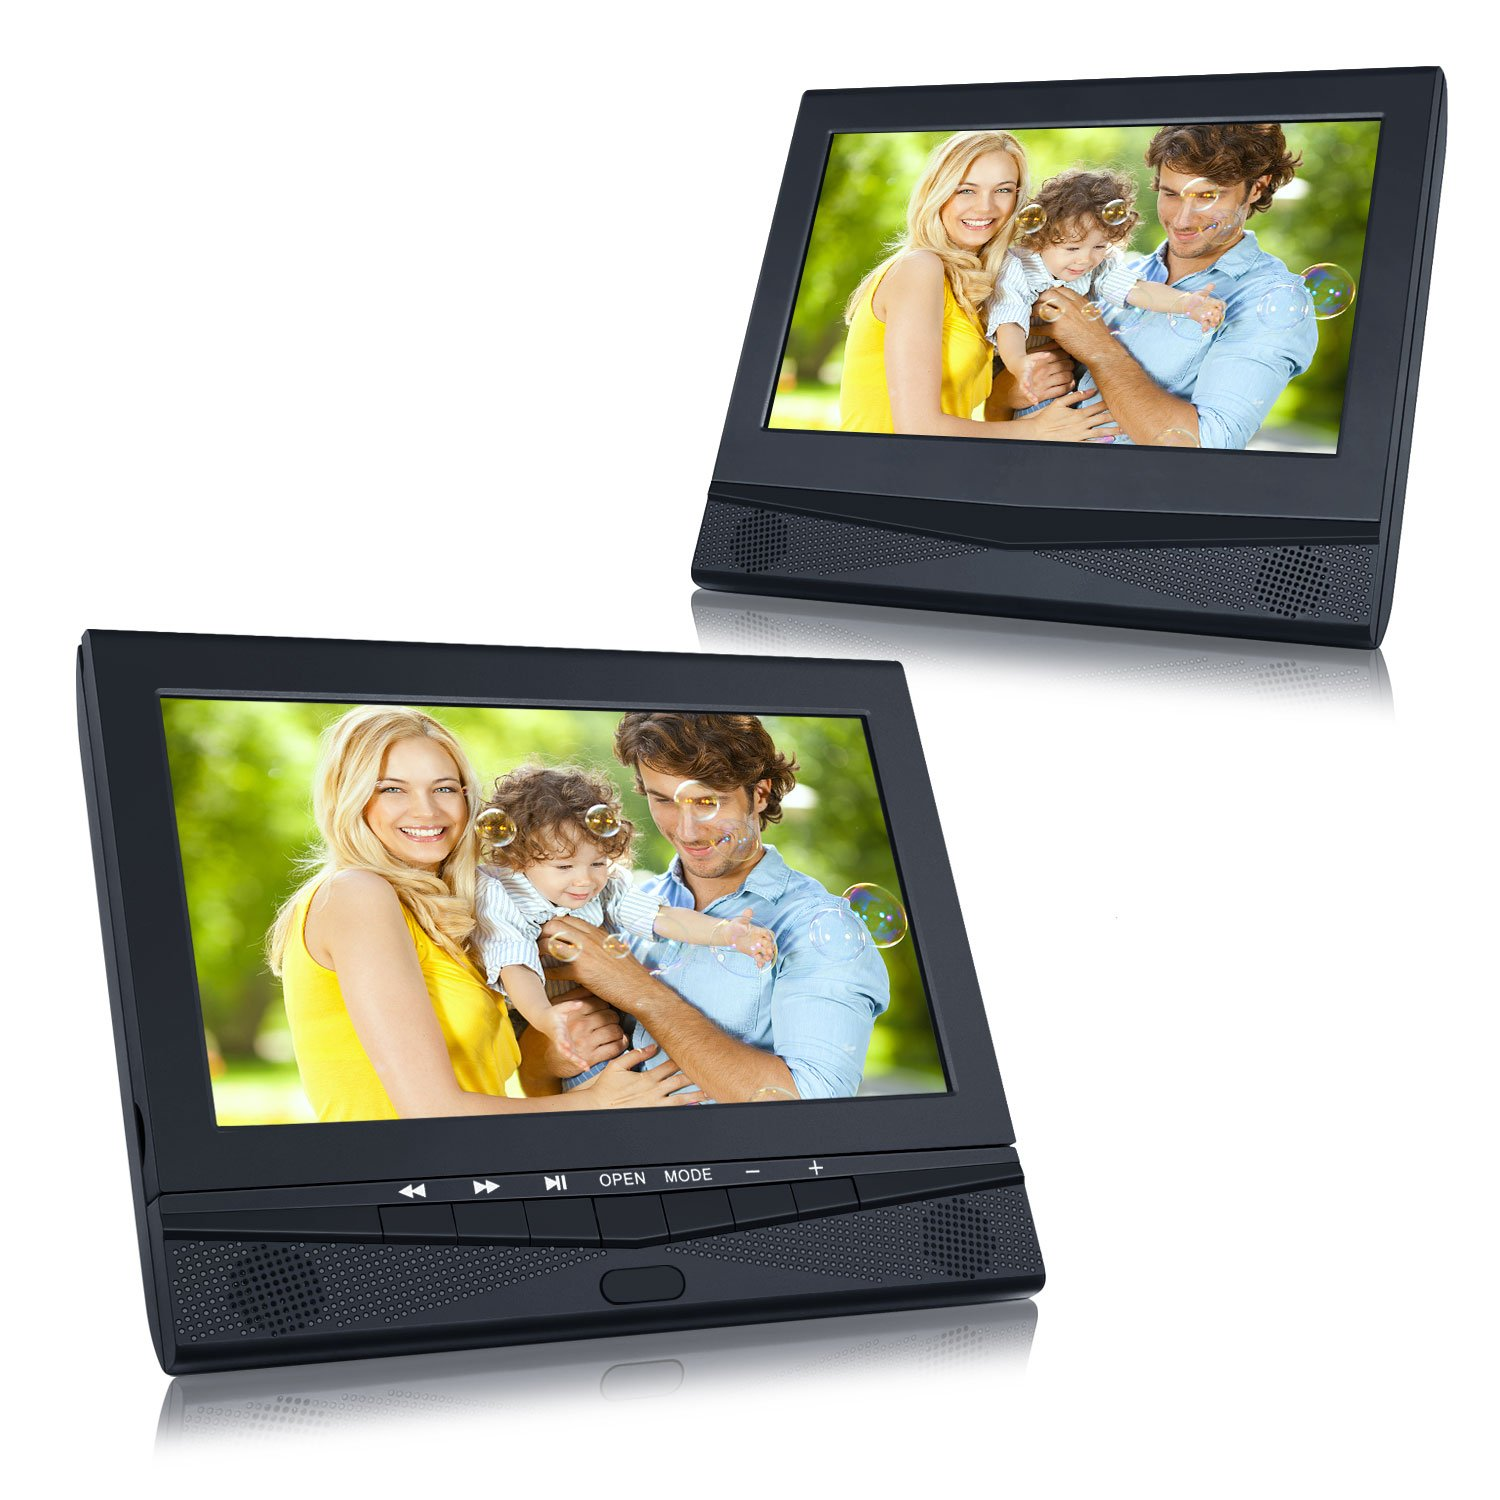 dvd player auto tragbarer fernseher mit 2 10 1 zoll monitore f r mama kinder ebay. Black Bedroom Furniture Sets. Home Design Ideas